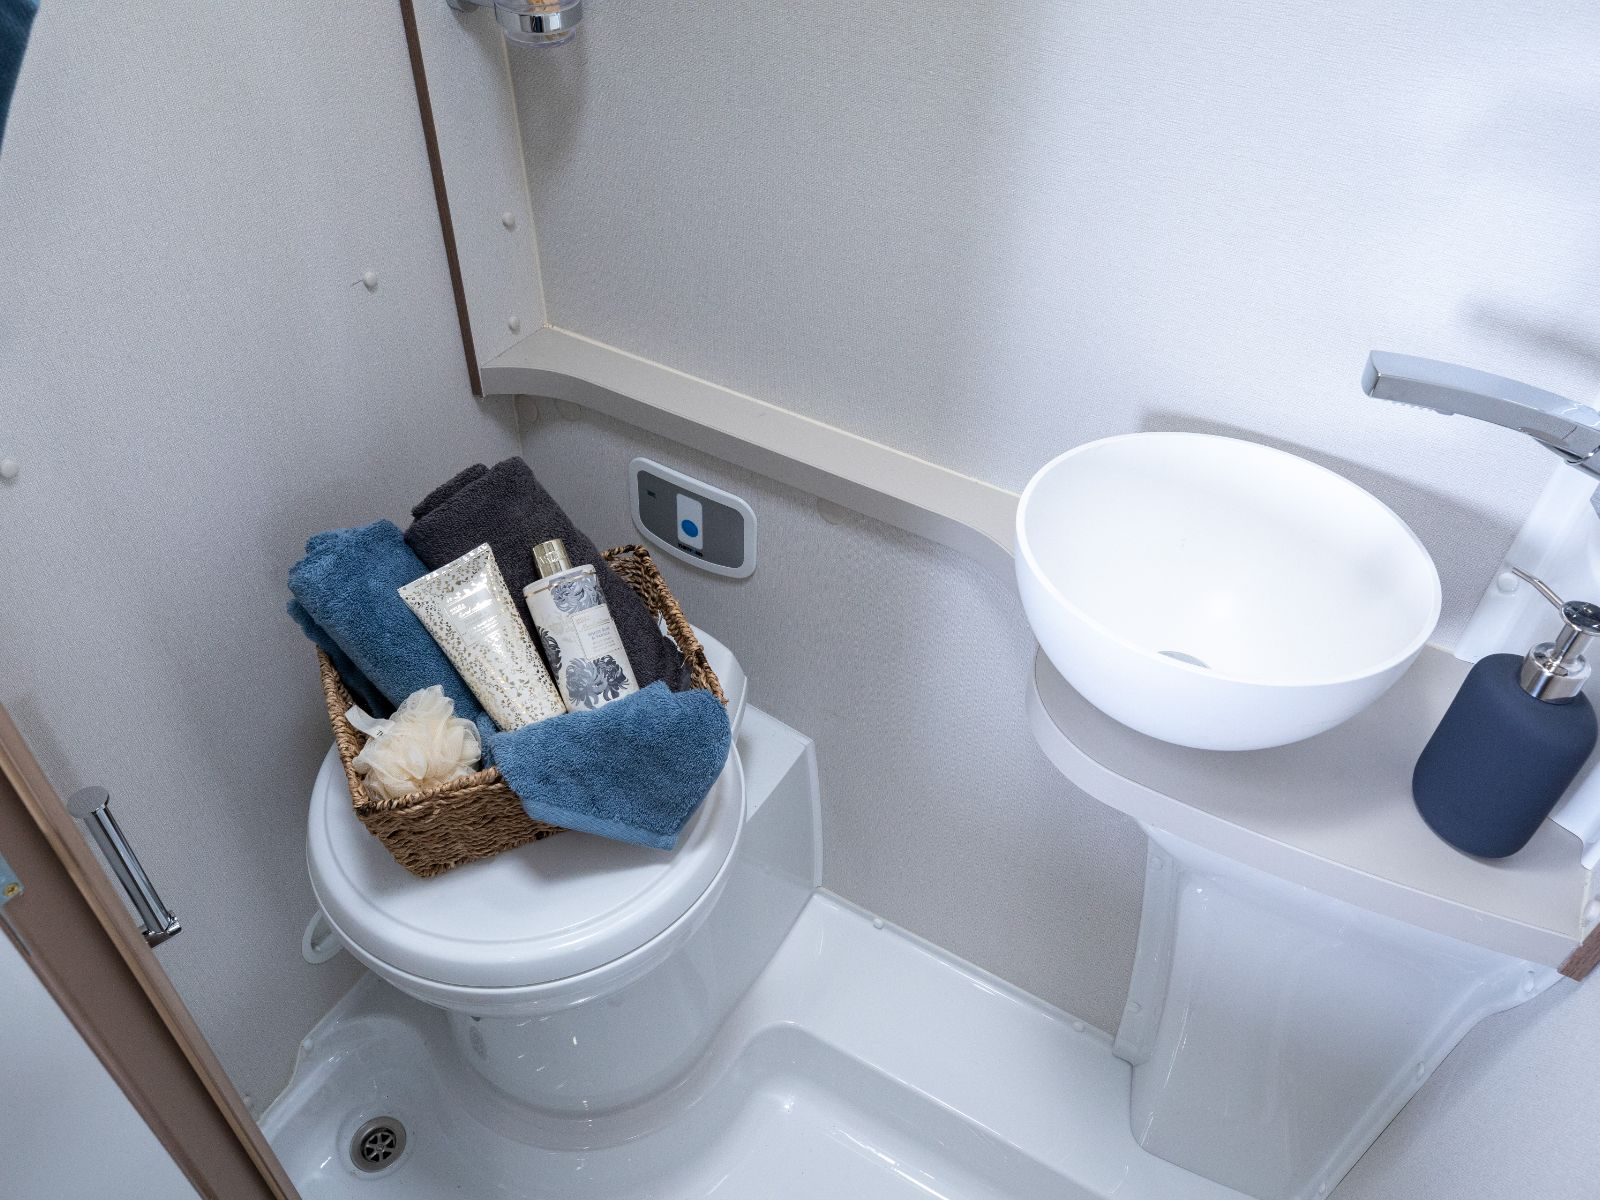 Bathroom view with toilet and toiletries accompanied with a sink'